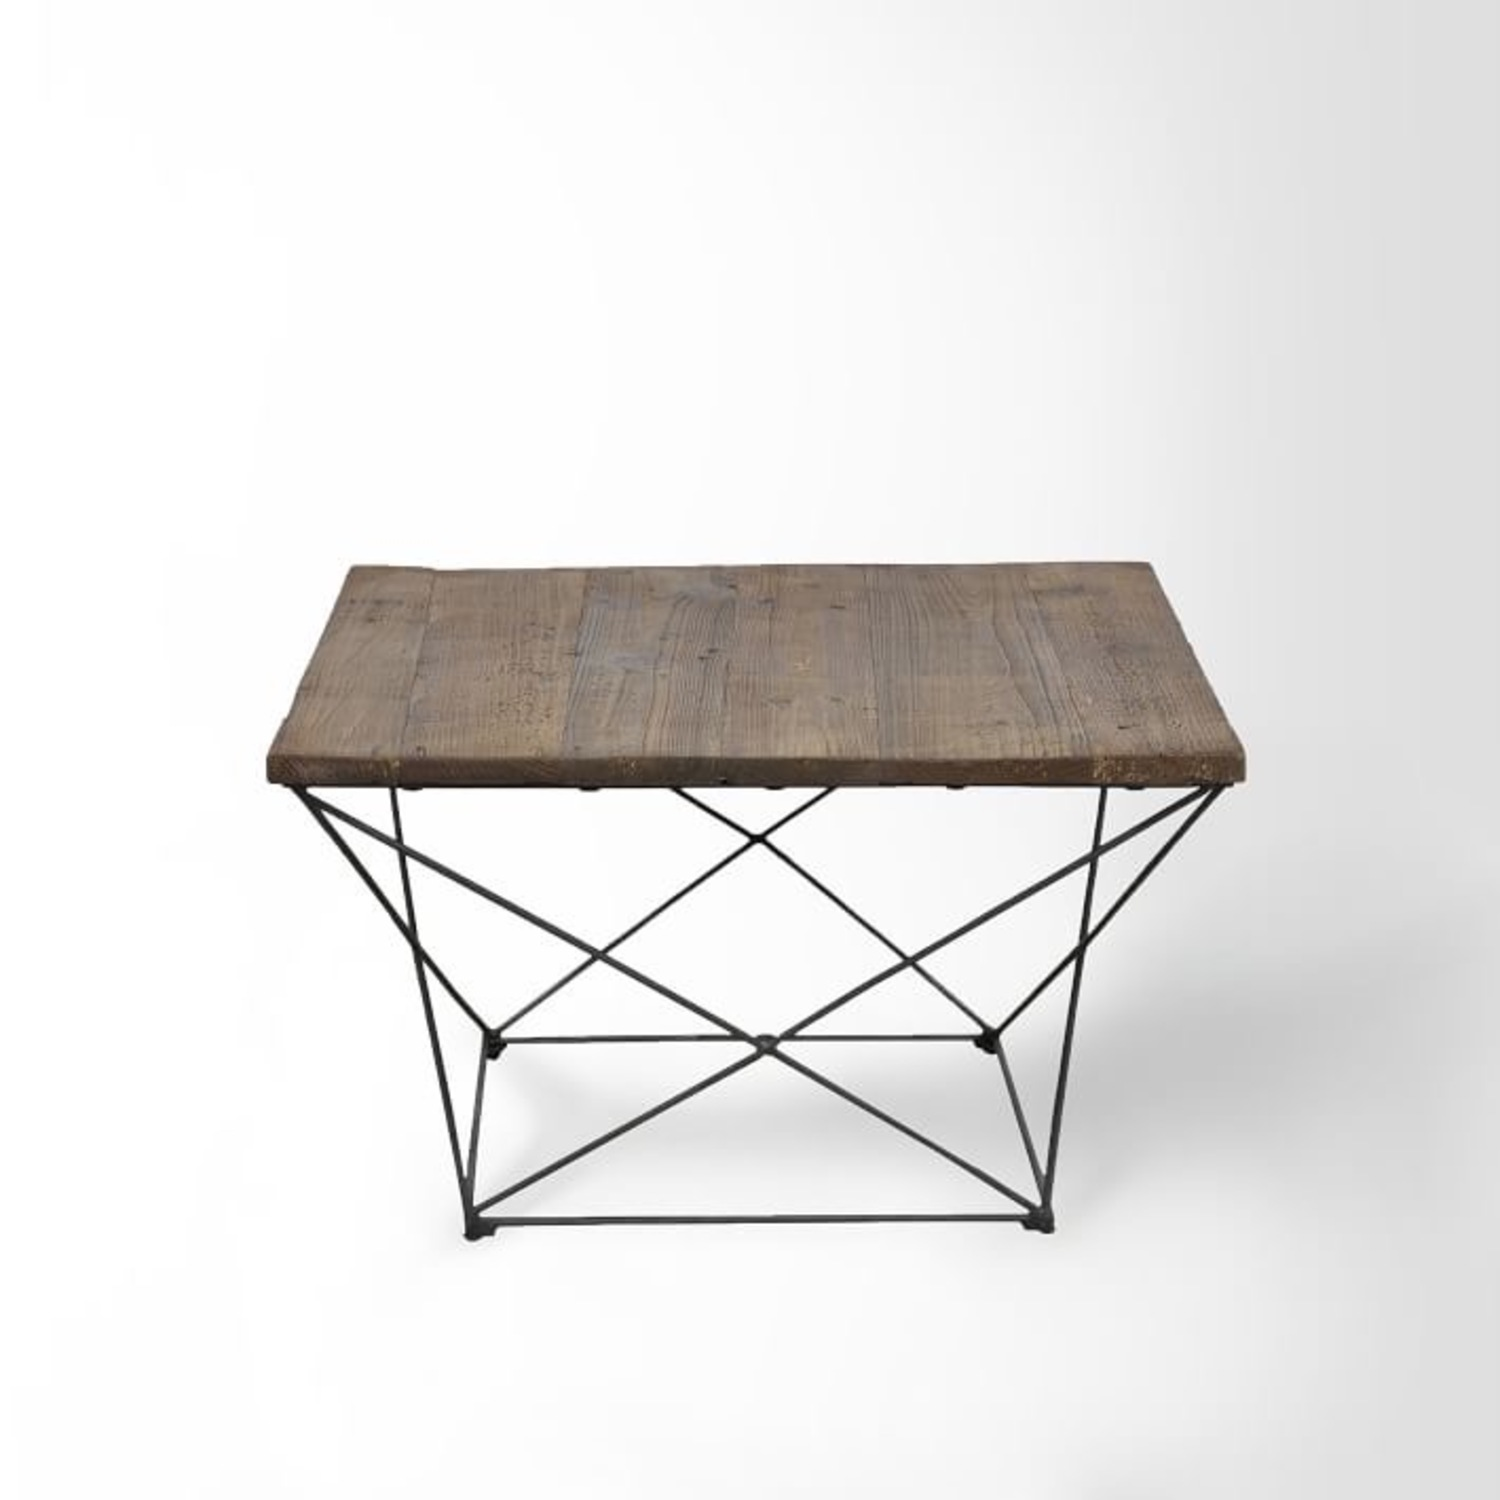 West Elm Reclaimed Wood Coffee Table - image-2